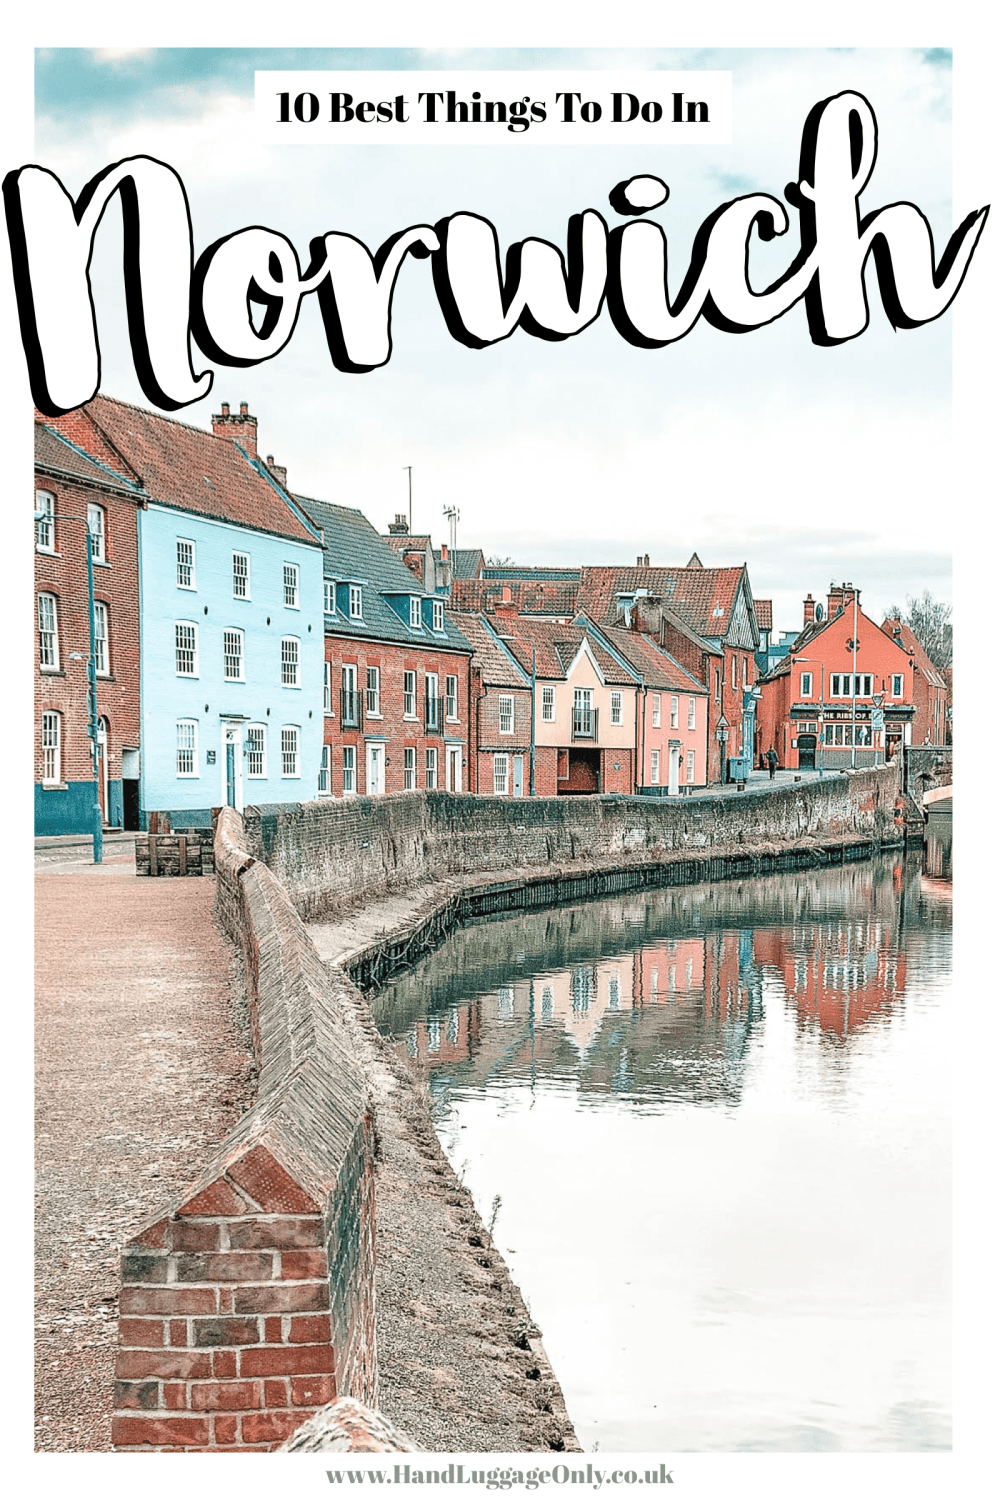 Best Things To Do In Norwich (1)